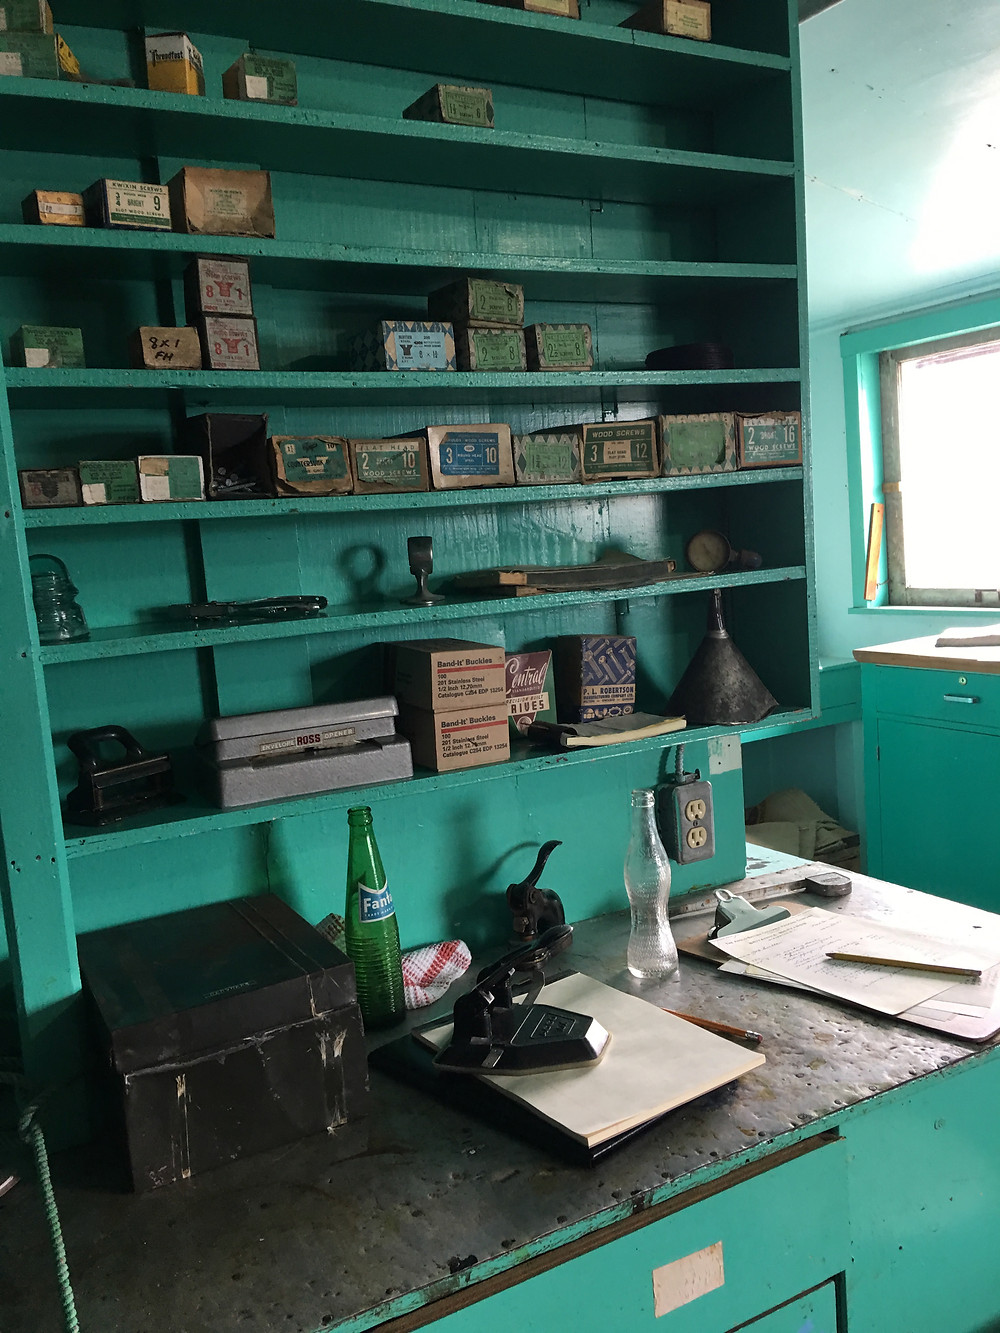 Photo of interior of the office at Britannia Shipyards National Historic Site by Lori Sherritt-Fleming